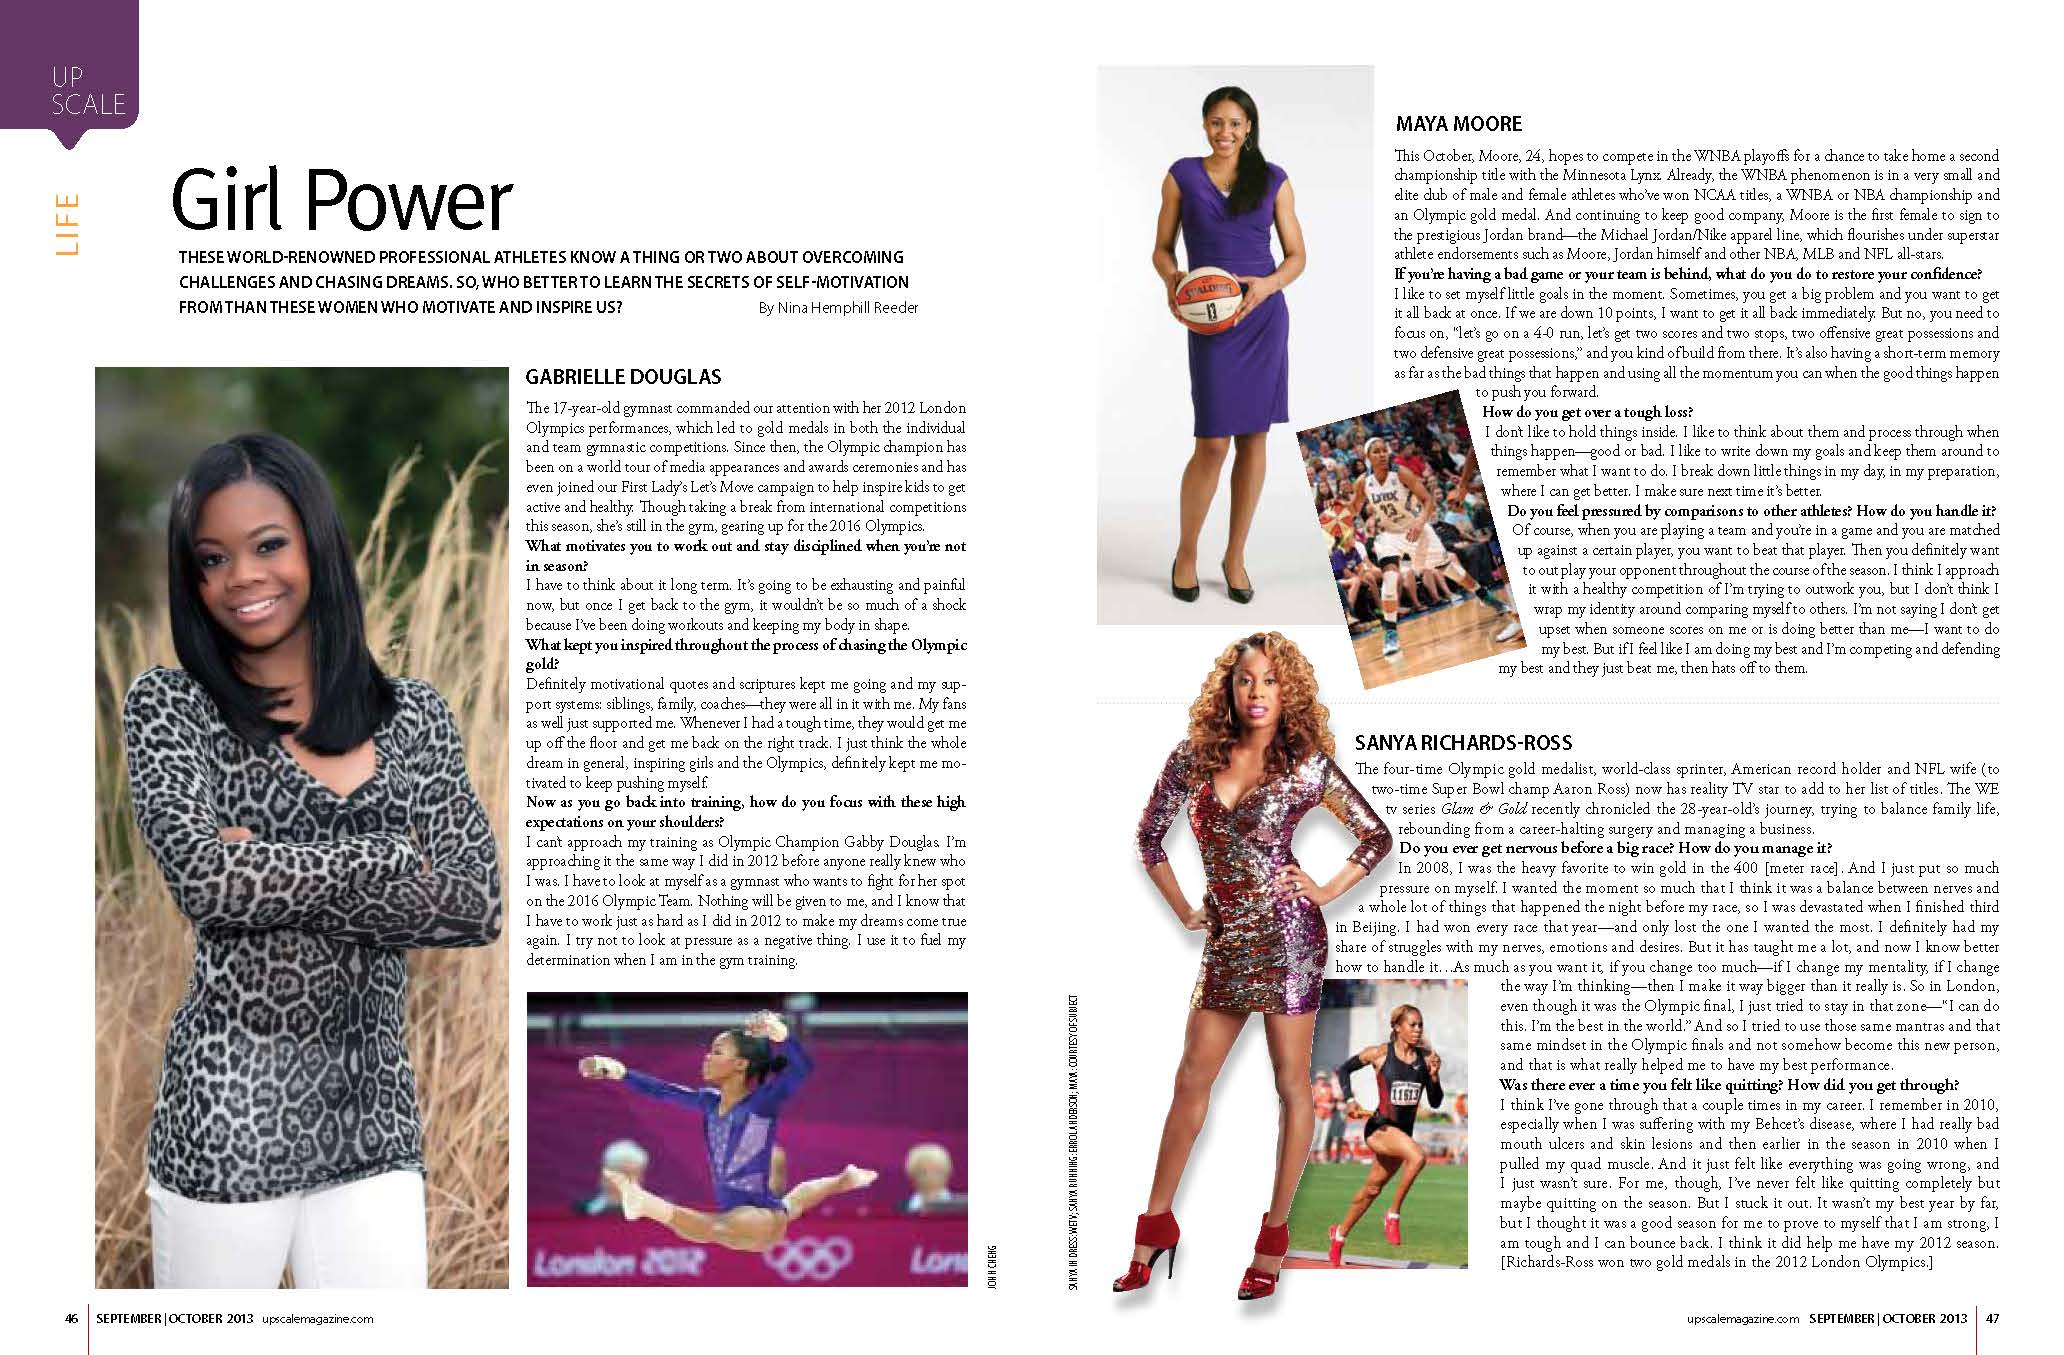 Feature with Female Athletes Gabrielle Douglass, Maya Moore and Sanya Richards-Ross